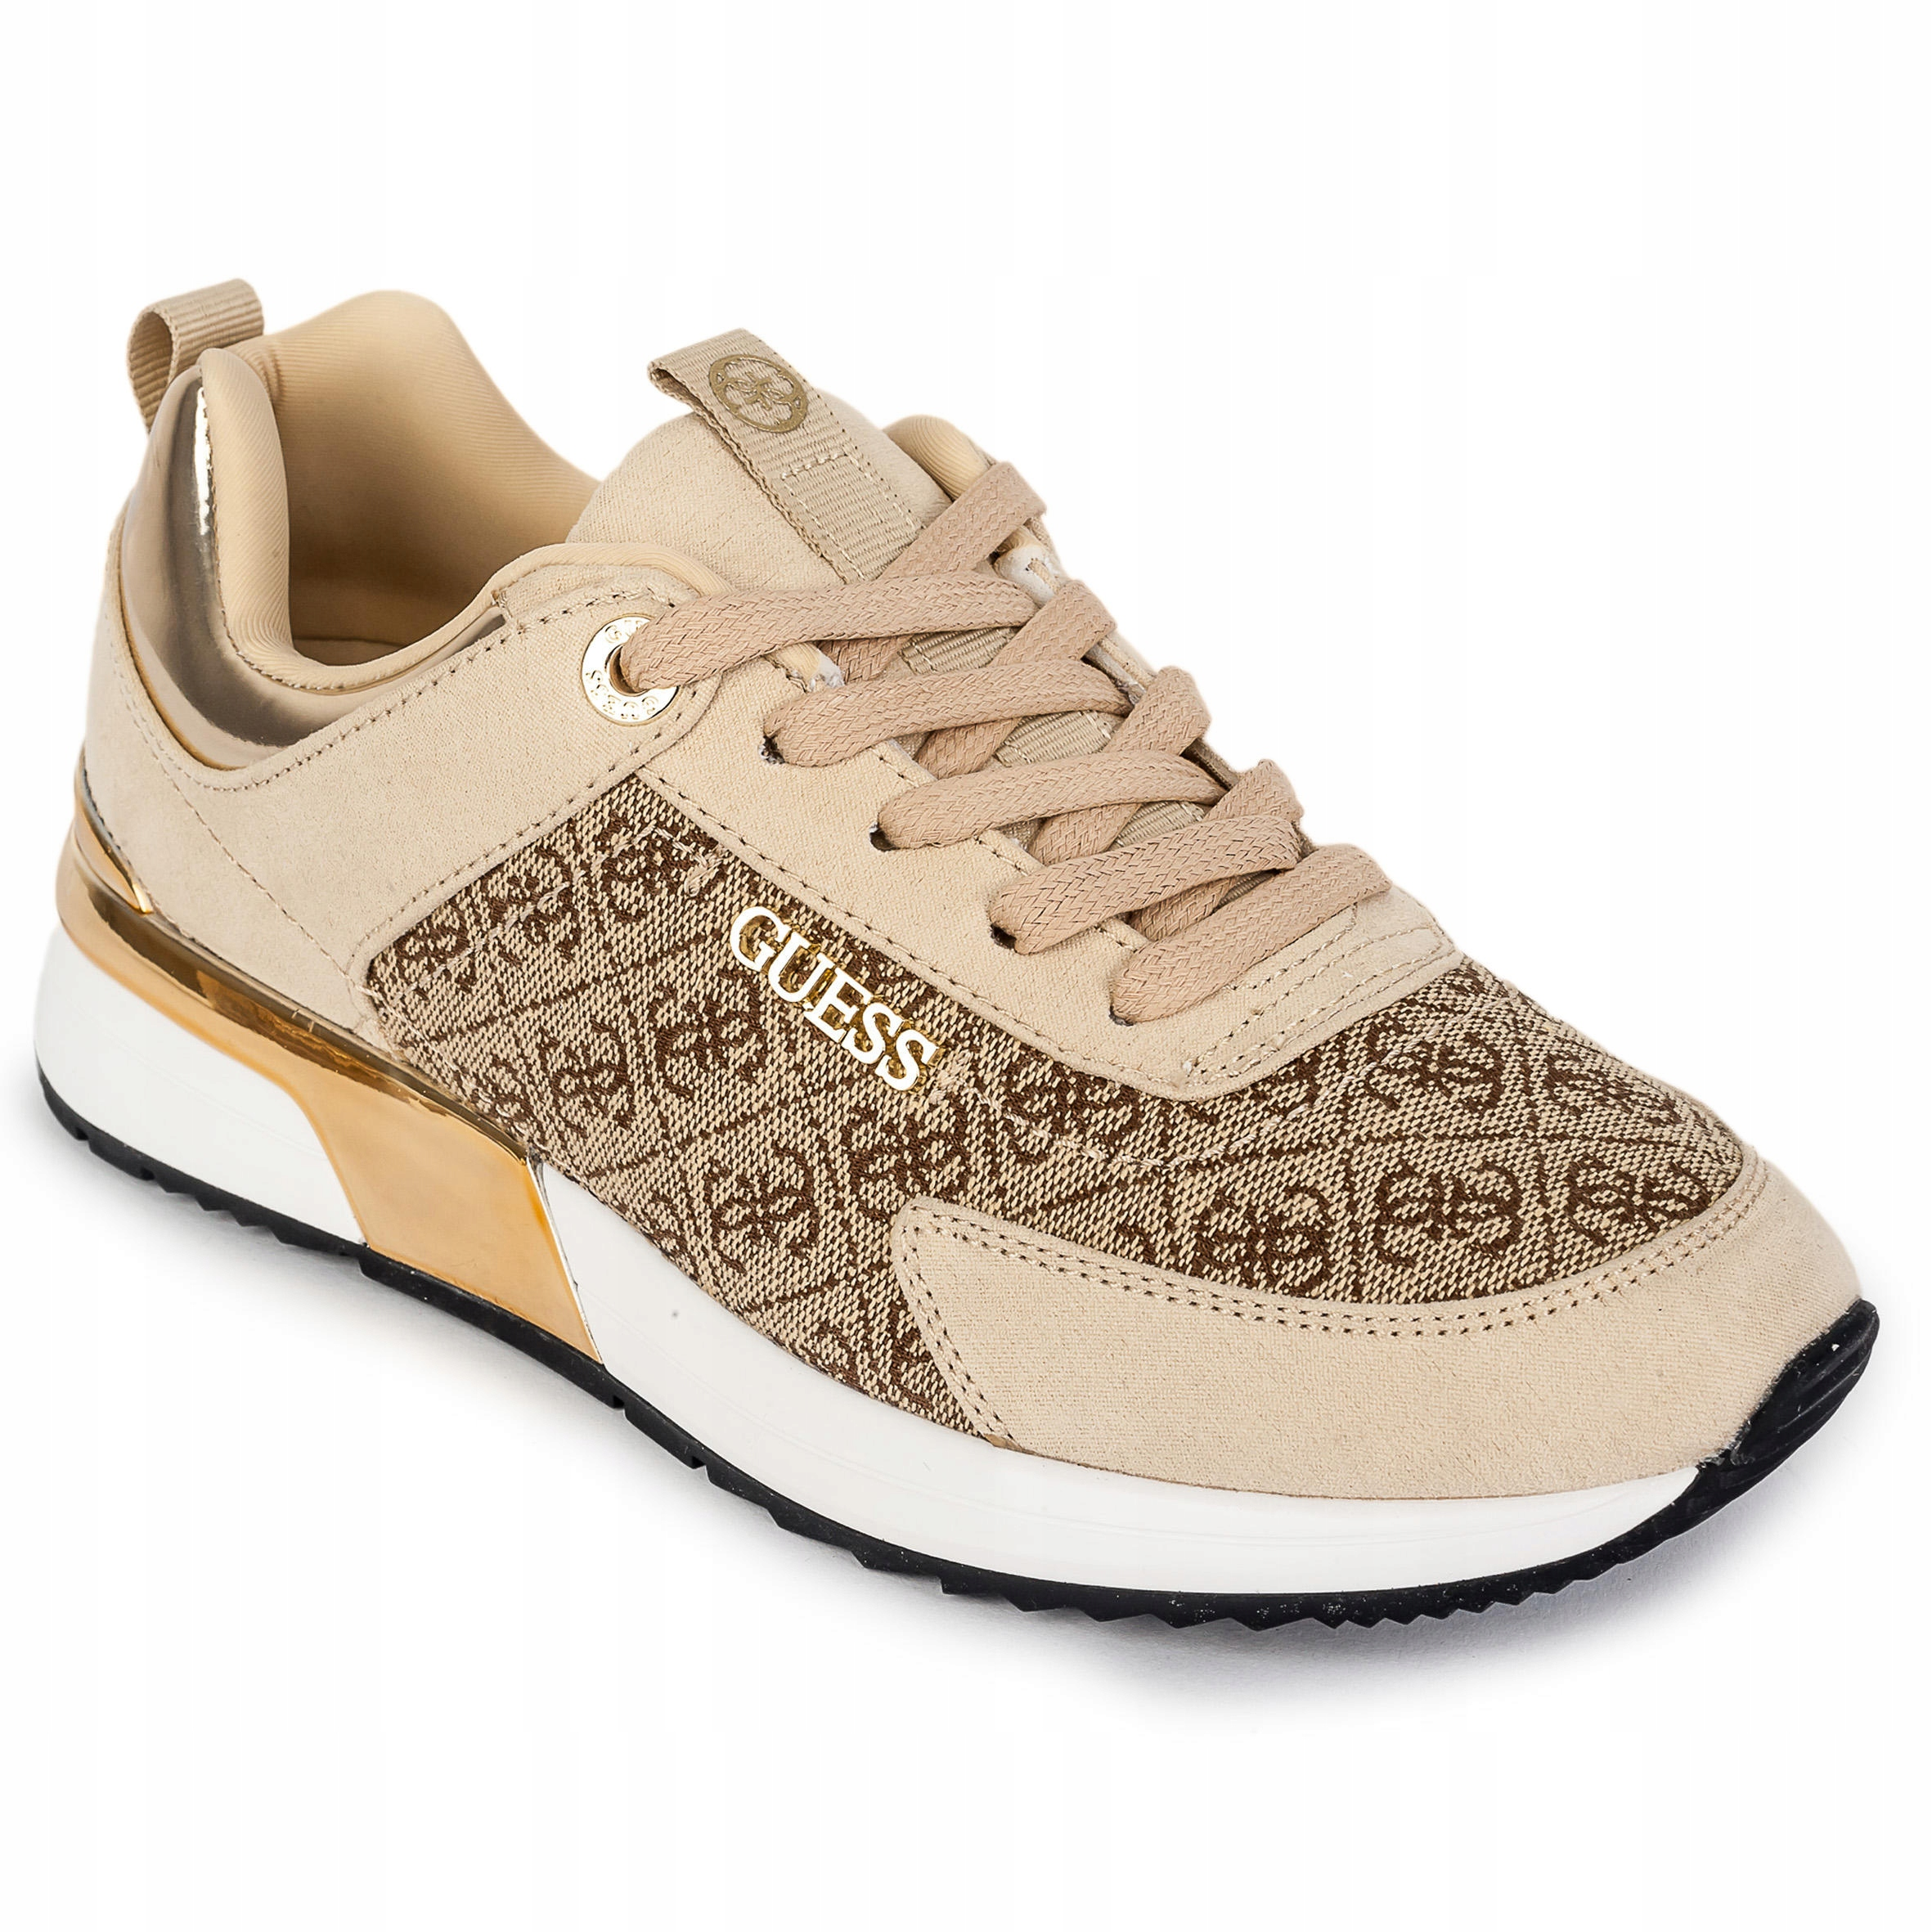 SNEAKERSY GUESS FL5MR2FAL12 BEIBR roz. 37